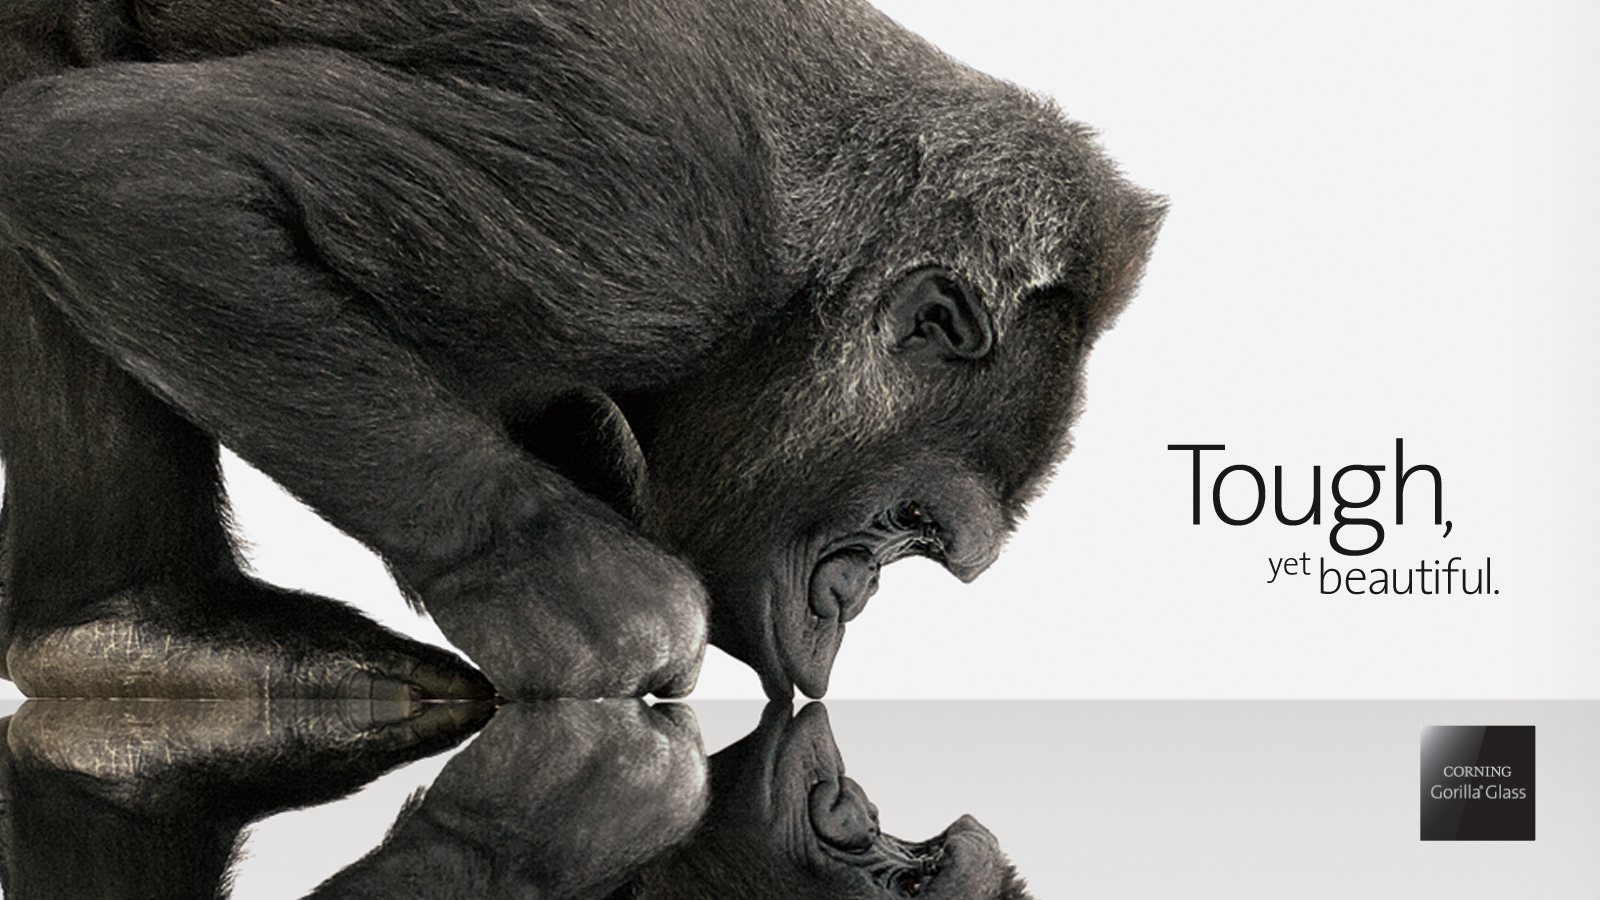 Gorilla Glass 5 is coming to make your phones even stronger than before